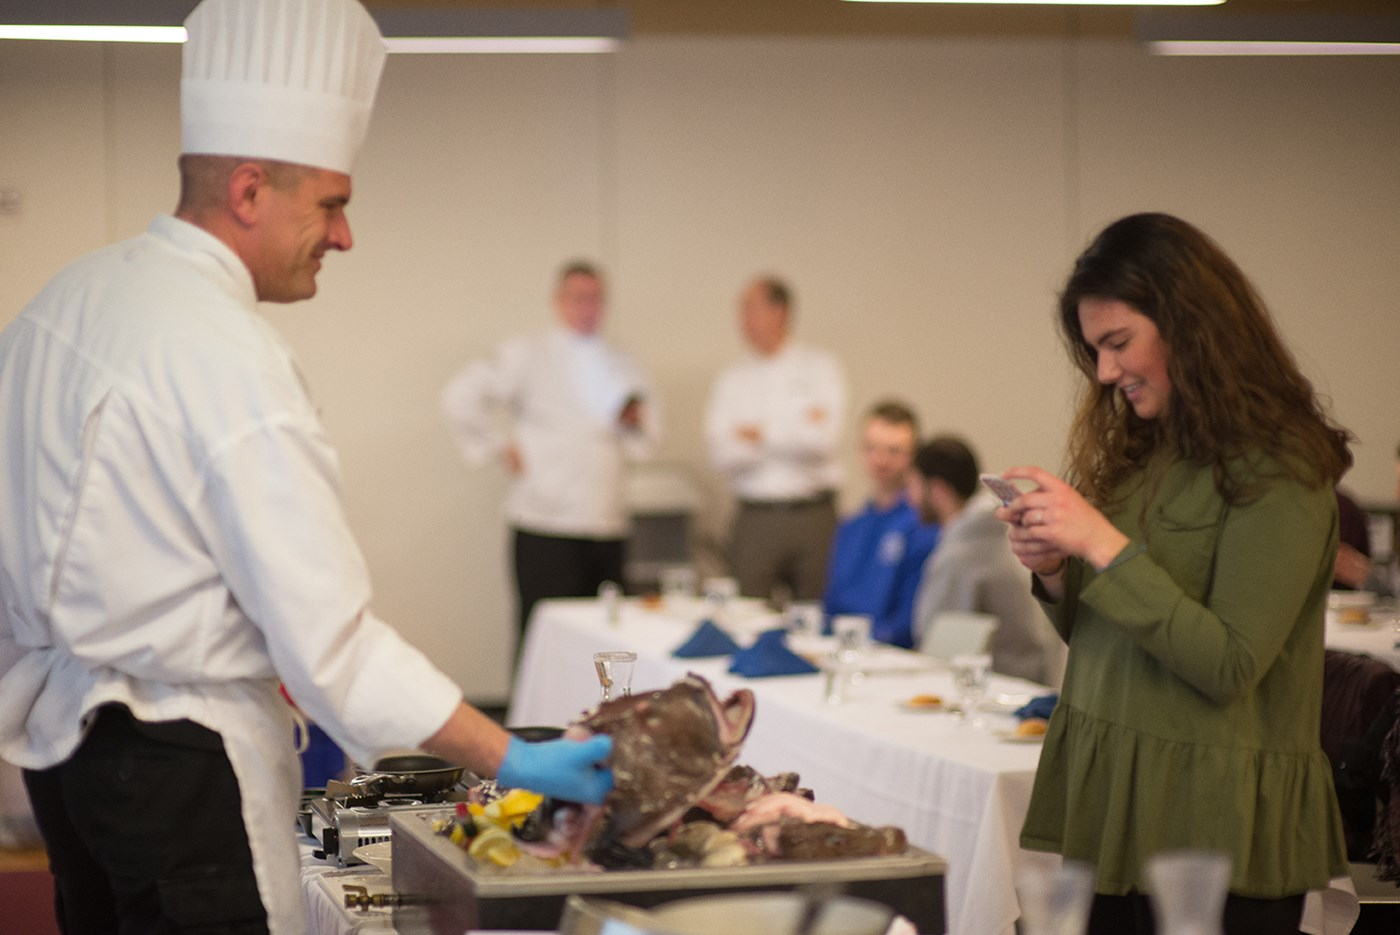 A UMass Lowell student takes a photo of executive chef Frank Hurley posing with a monkfish at a cooking class